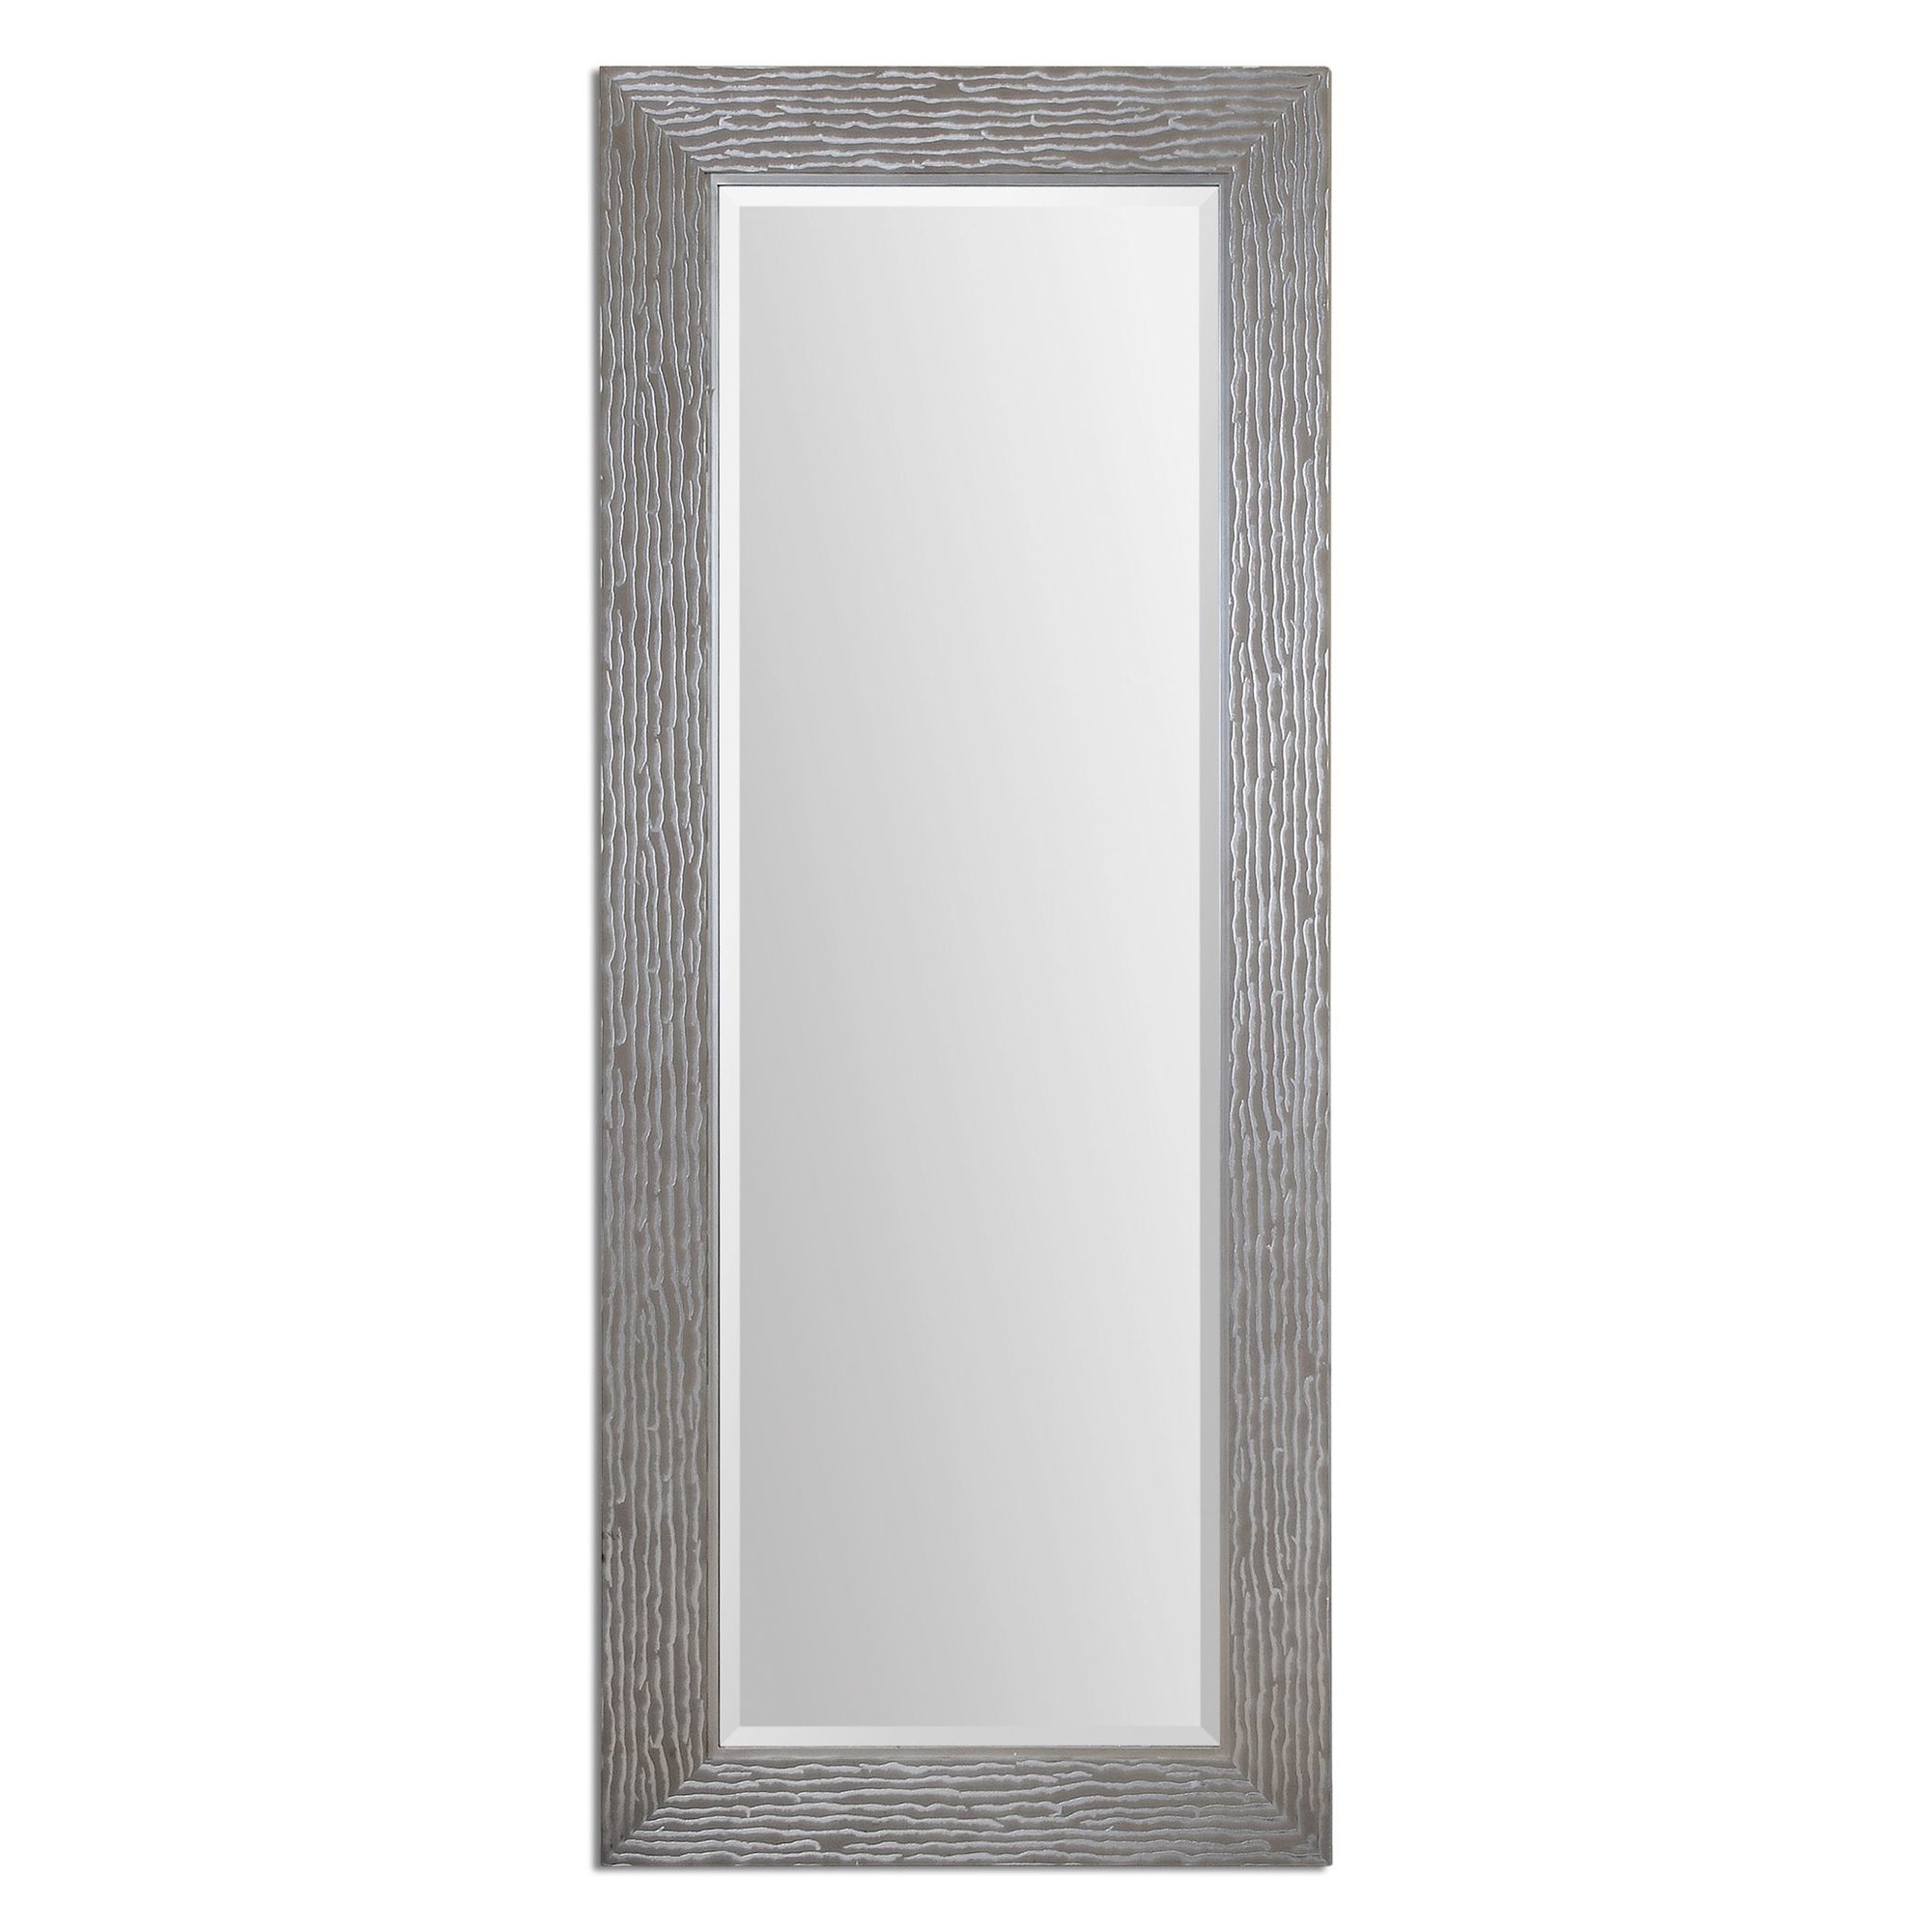 Uttermost Amadeus Large Wall Mirror Reviews Wayfair Pertaining To Large Wall Mirrors (Photo 14 of 15)